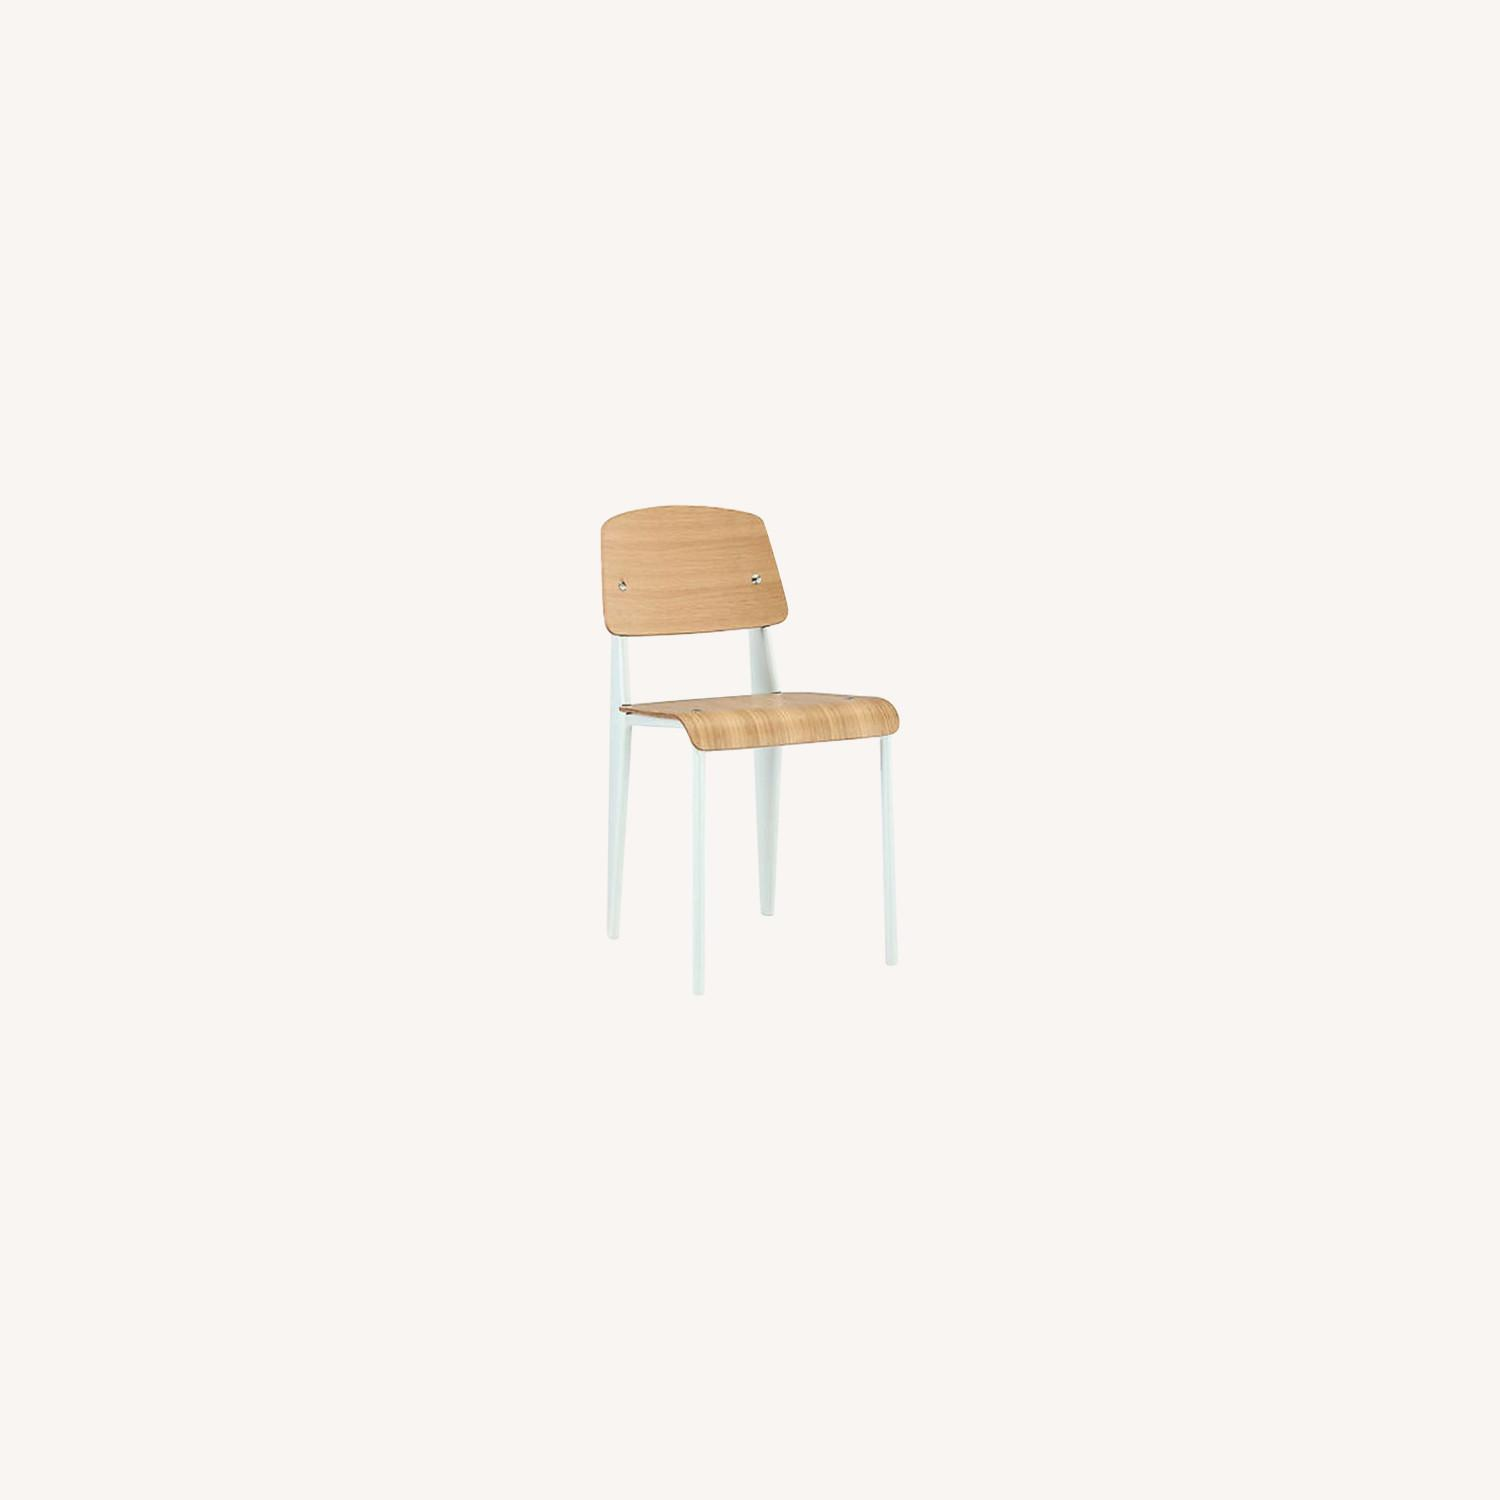 Jean Prouve Style Chair in Natural White - image-0